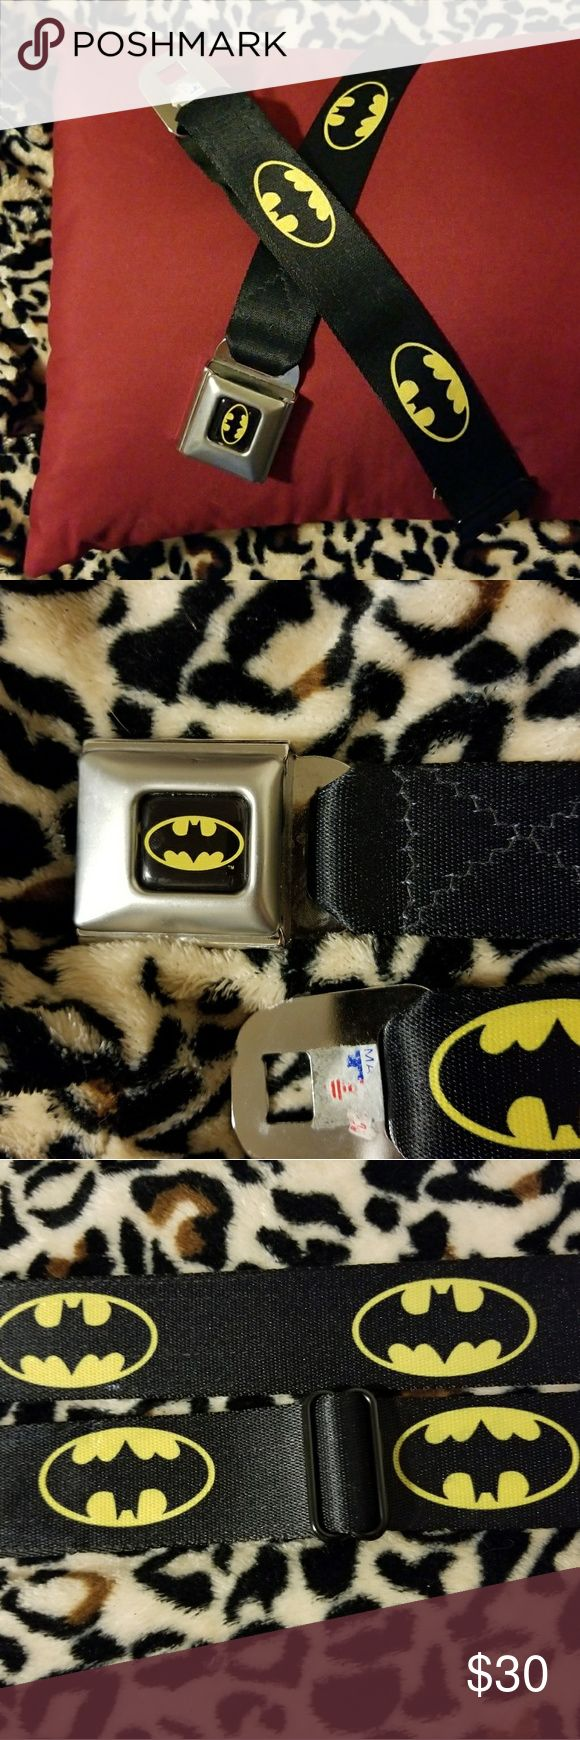 Batman Seatbelt Style Belt Very unique find! The belt is made of seatbelt material (but softer) with a seat belt buckle closure. Worn a few times, but in mint condition. Adjustable as shown in the last picture. Accessories Belts